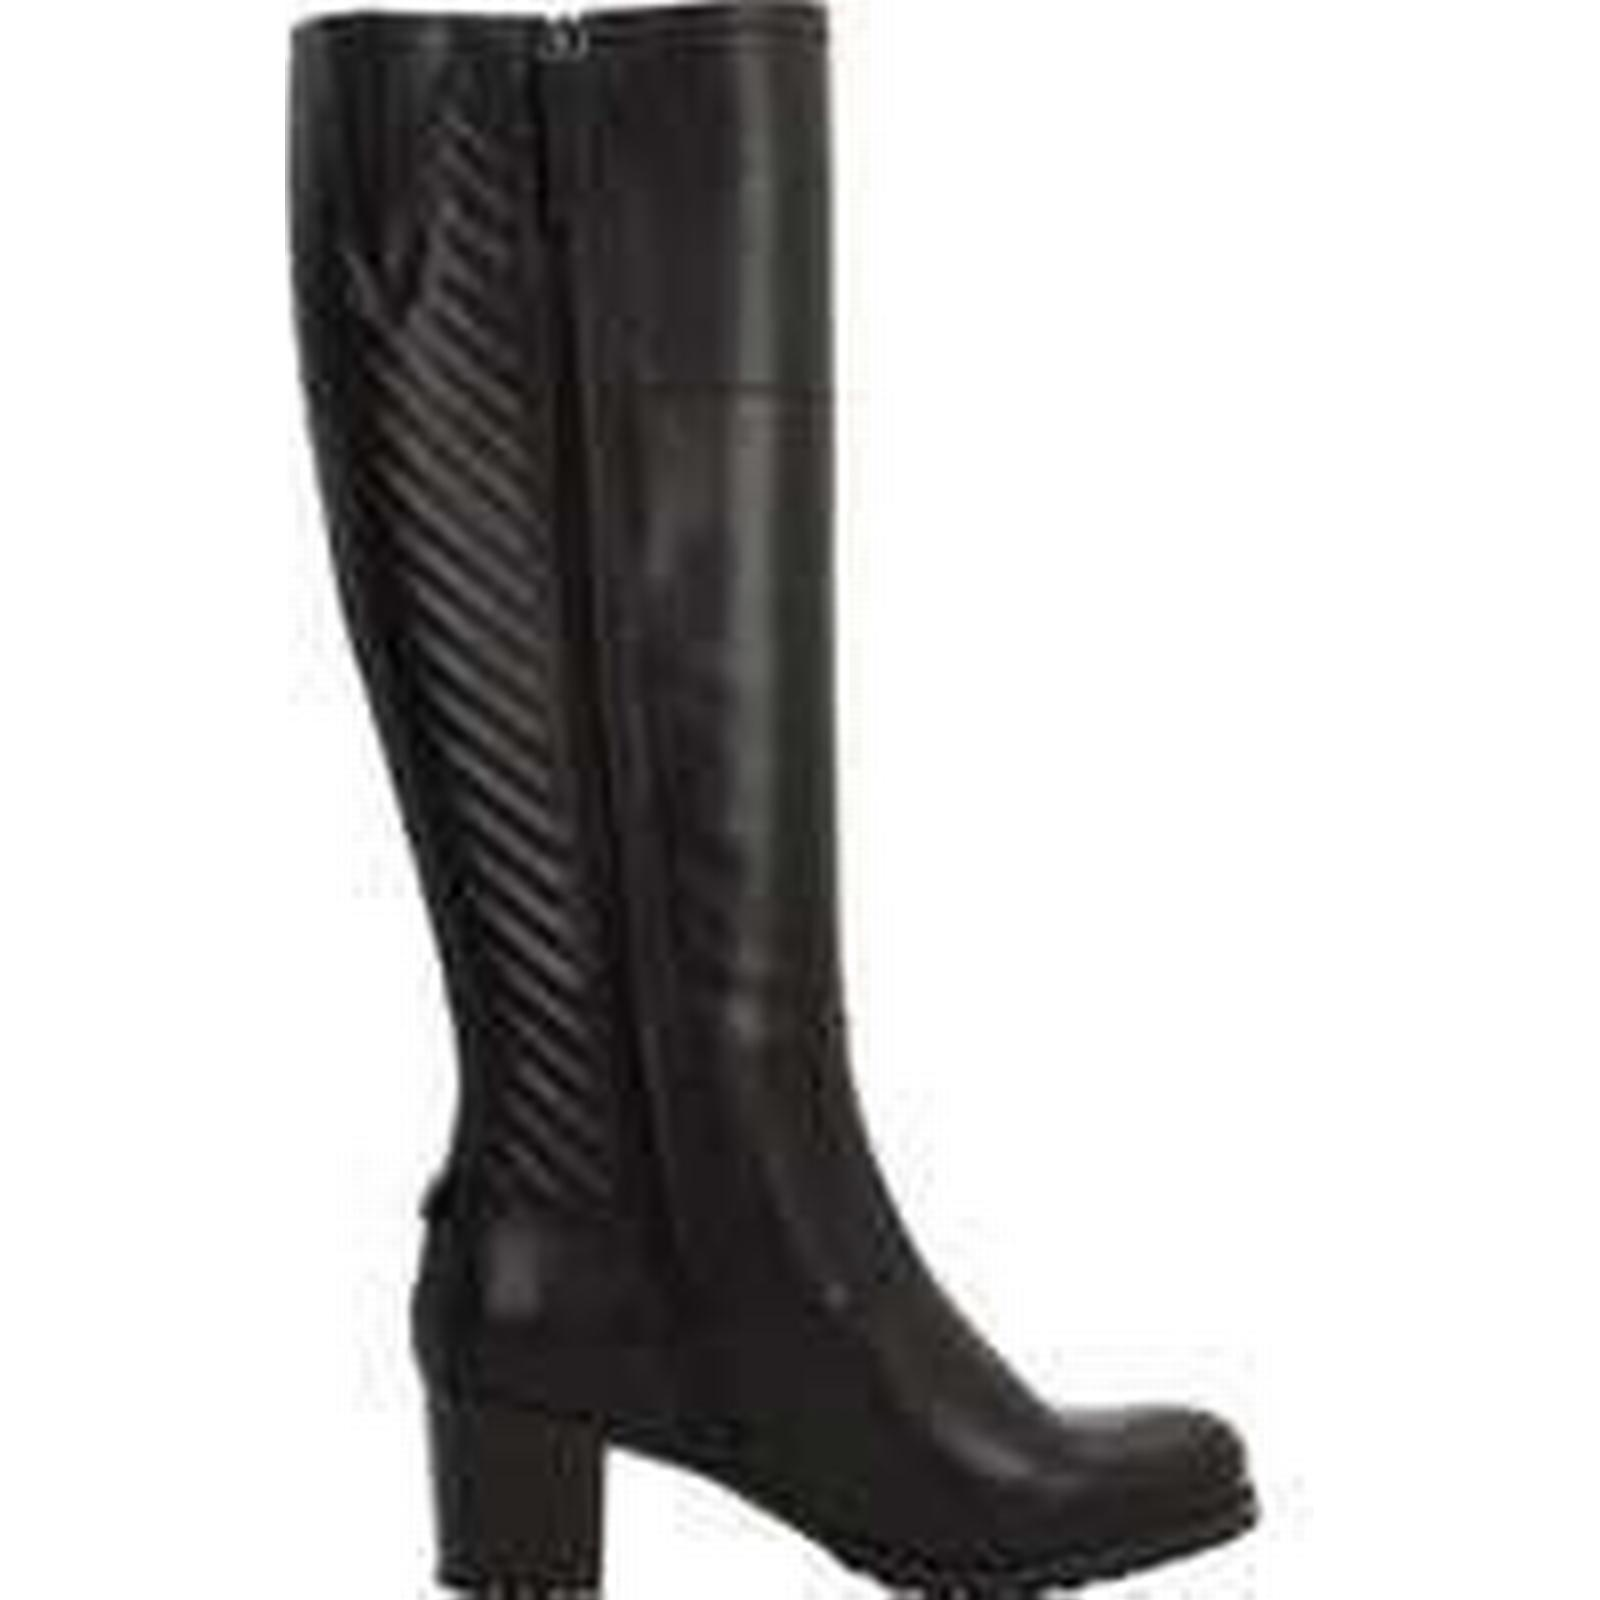 Spartoo.co.uk Geox High D LISE ABX women's High Geox Boots in Black 93cf0f